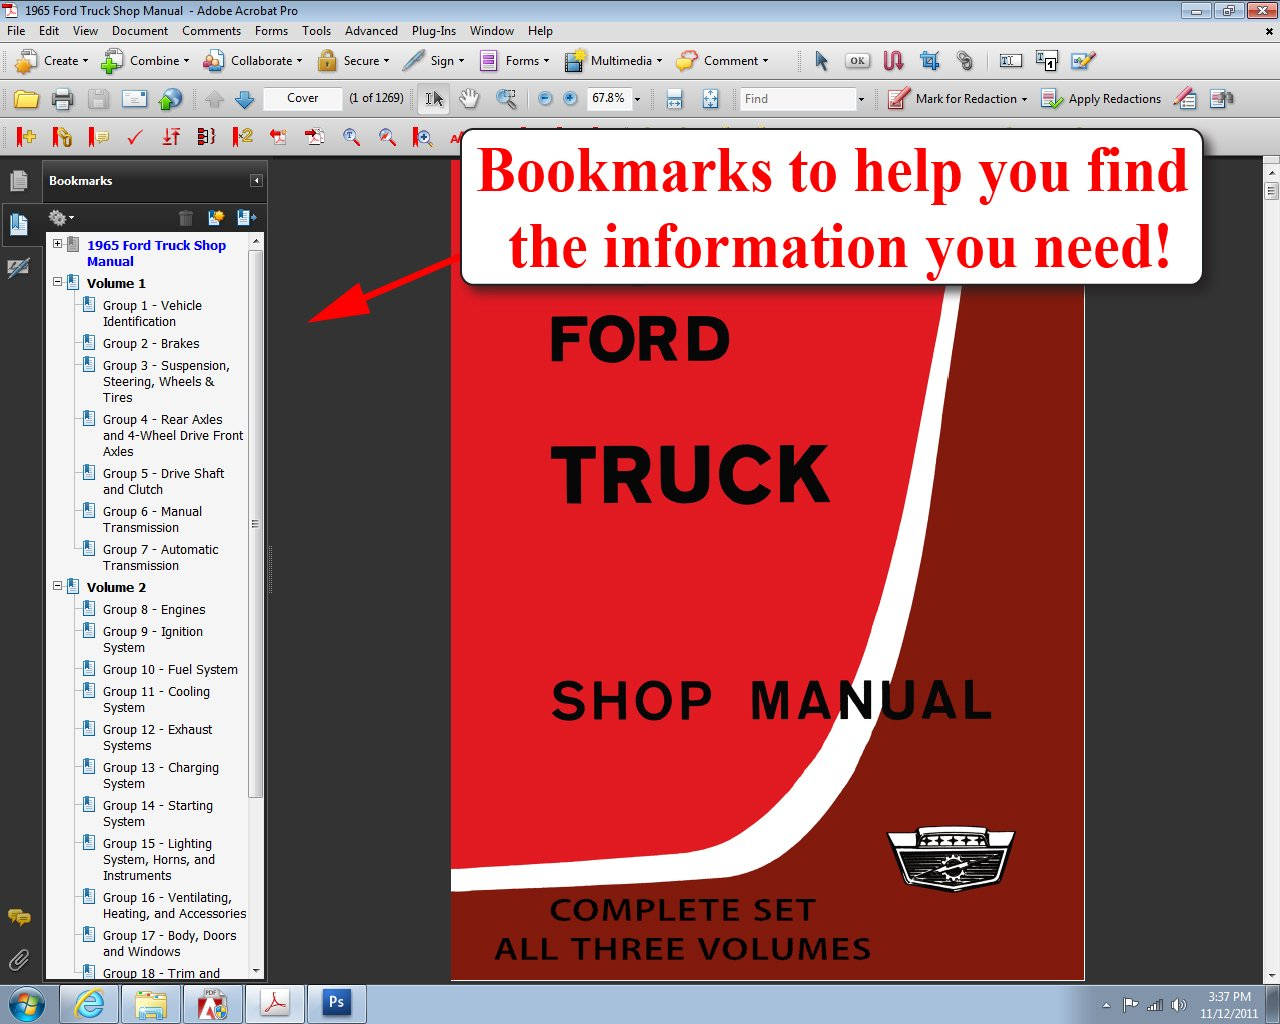 1965 ford truck shop manual ford motor company david e leblanc 1965 ford truck shop manual ford motor company david e leblanc 9781603710732 amazon books fandeluxe Choice Image